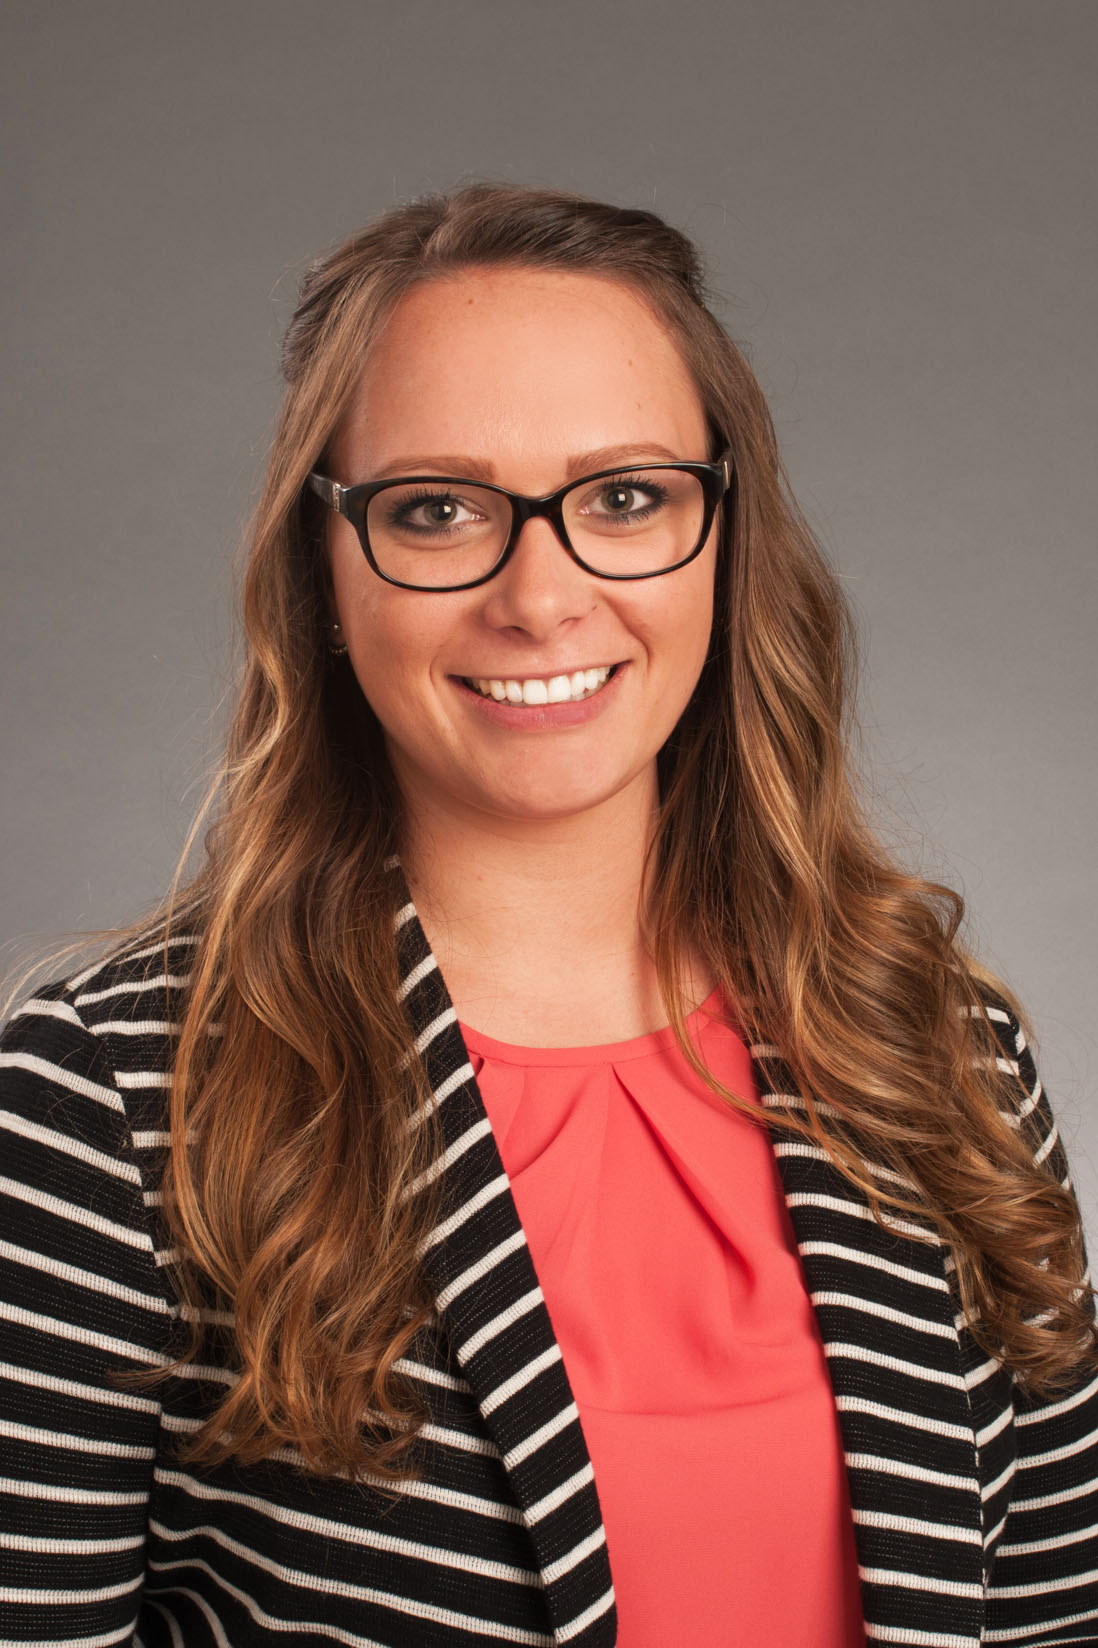 Headshot of Michelle Tassinari, Outreach and Prevention Case Manager for the Office of the Dean of Students at Boise State